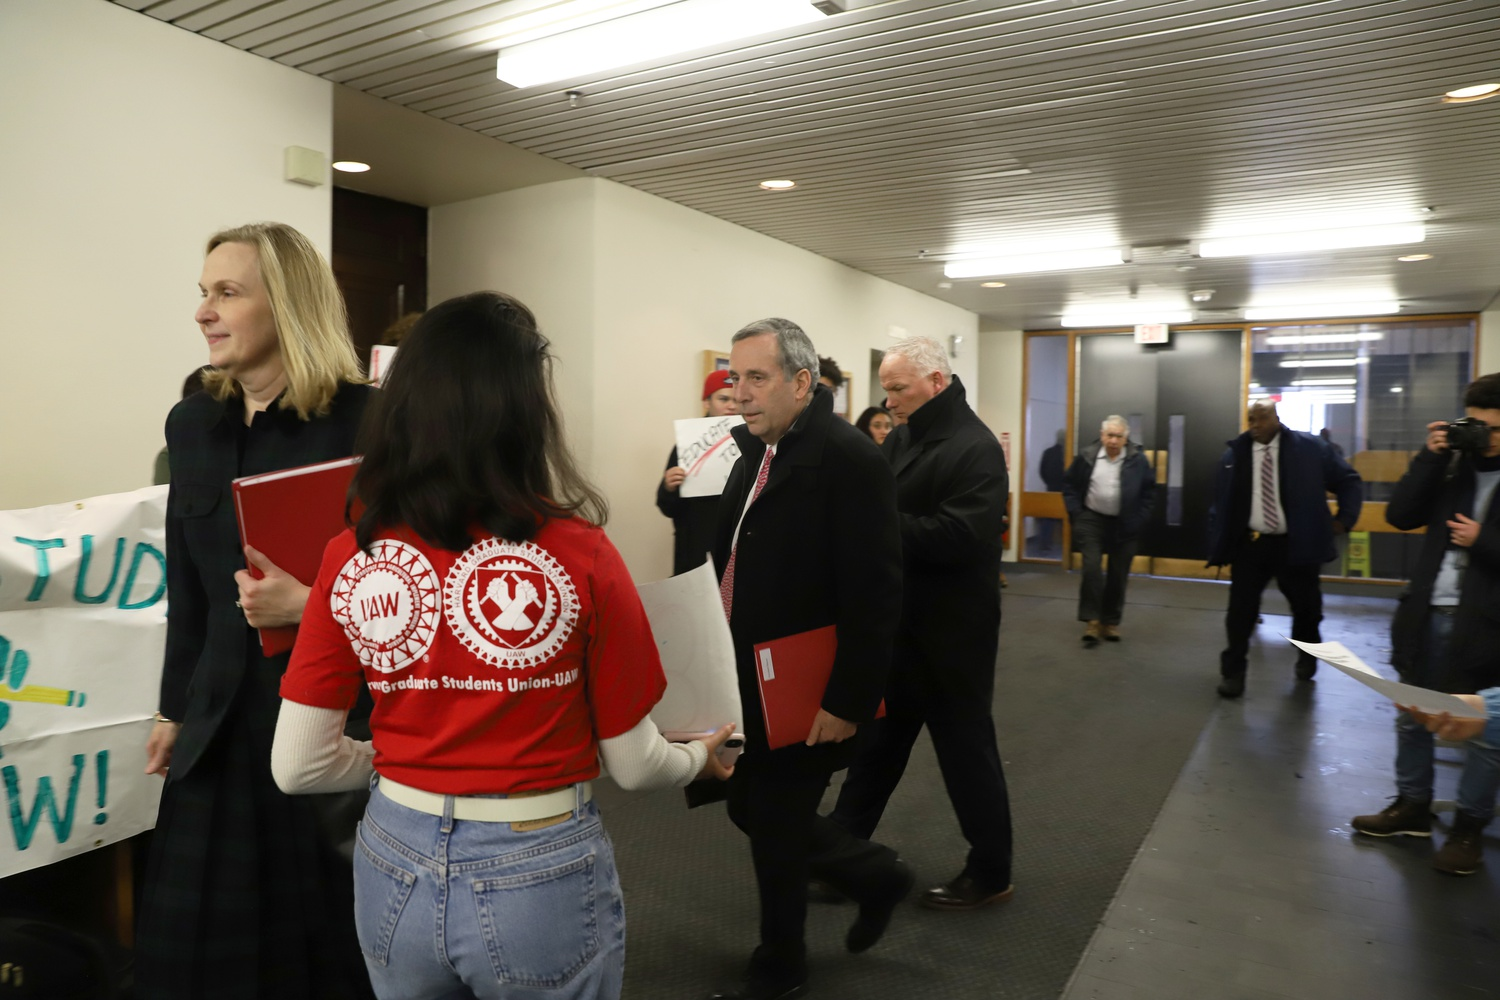 University President Lawrence S. Bacow faced protestors in Emerson Hall on his way to a faculty meeting Tuesday. Protestors decried the university's denial of tenure to Professor Lorgia García Peña.